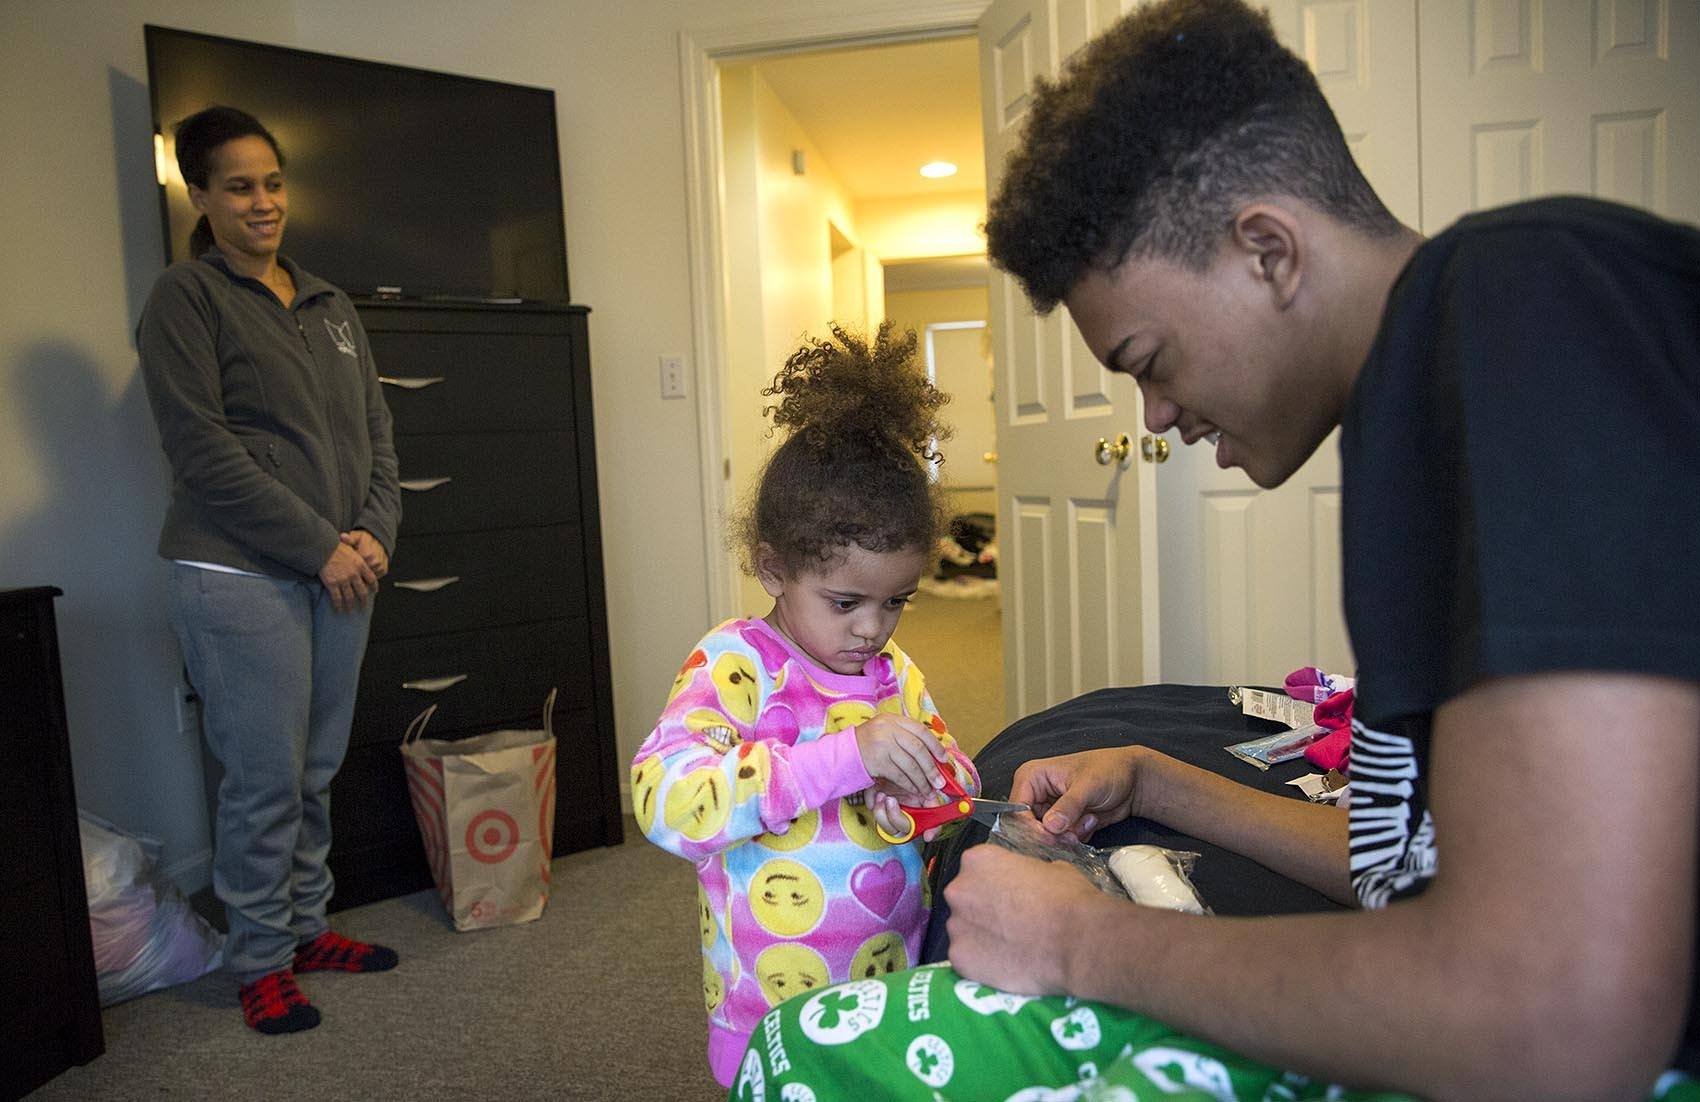 Settling into their new home, Isaiah Robinson, 16, plays with his sister Juliah, 3, as their mother, Heather, looks on. (Robin Lubbock/WBUR)